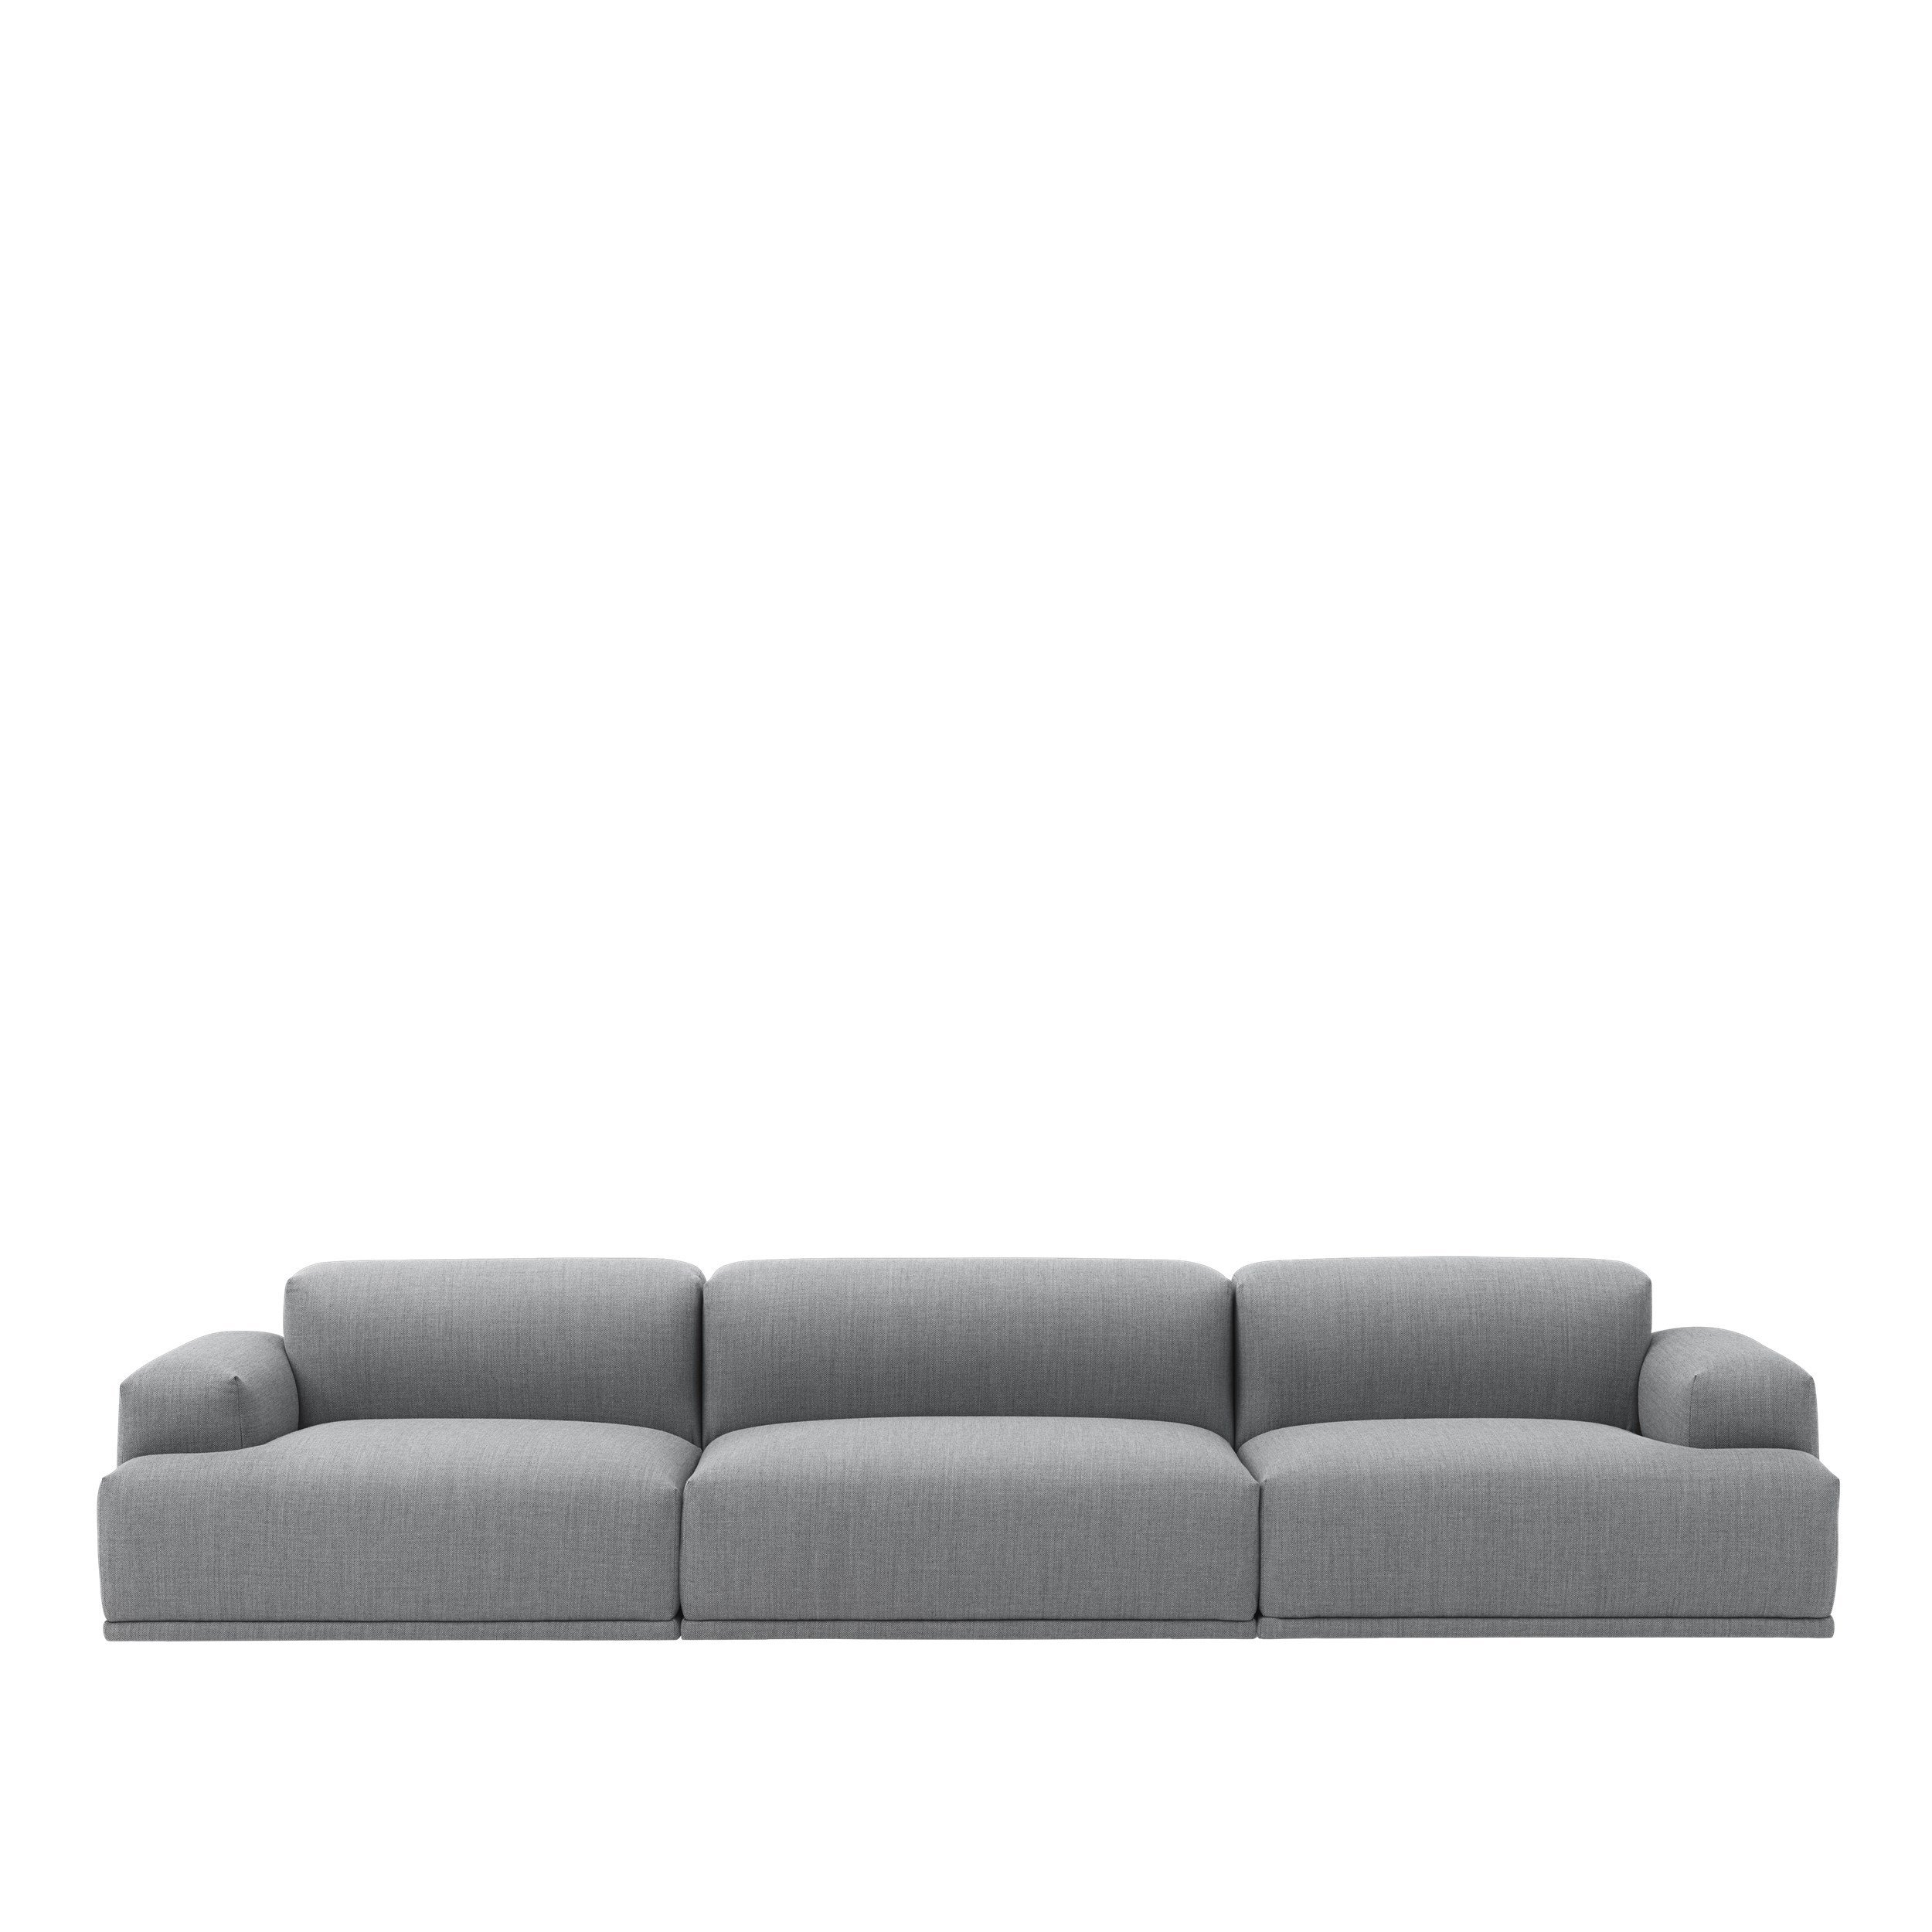 Full Size of Langes Sofa Muuto Connect System Mega Big Mit Schlaffunktion Garnitur 2 Teilig Höffner Stressless Riess Ambiente Xxl Günstig Sitzer Relaxfunktion Ektorp Sofa Langes Sofa